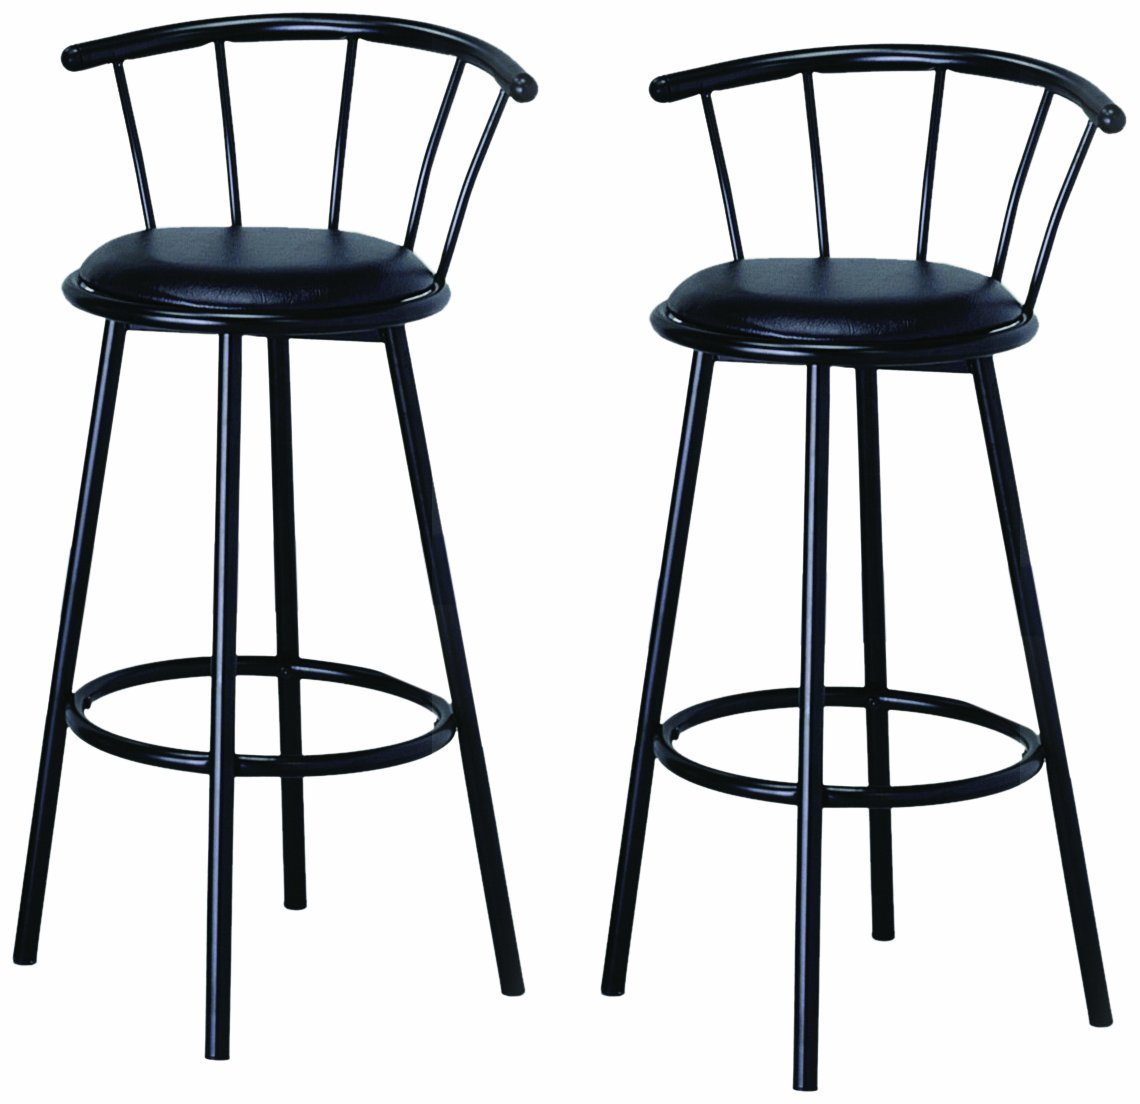 29 Inch Black Finish Swivel Dining Bar Stool Chairs Set